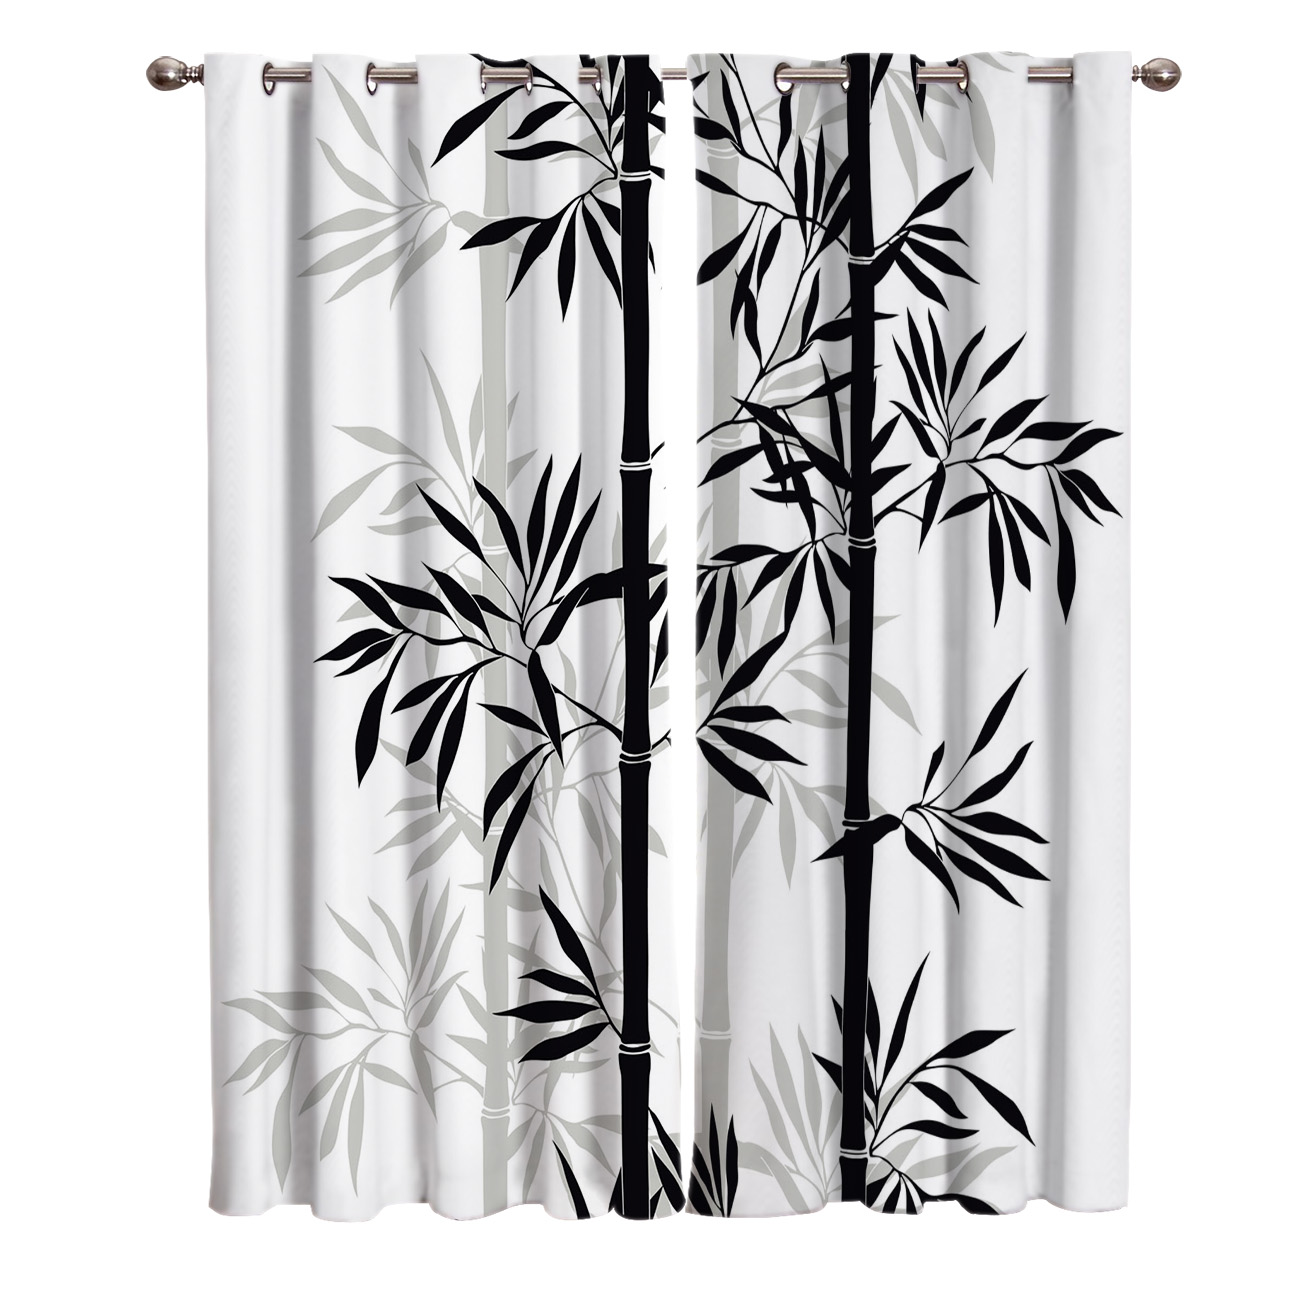 US $12.99 38% OFF|Black White Bamboo Chinese Style Ink Leaf Plant Window  Treatments Curtains Valance Curtain Rod Curtains Kitchen Drapes Indoor-in  ...